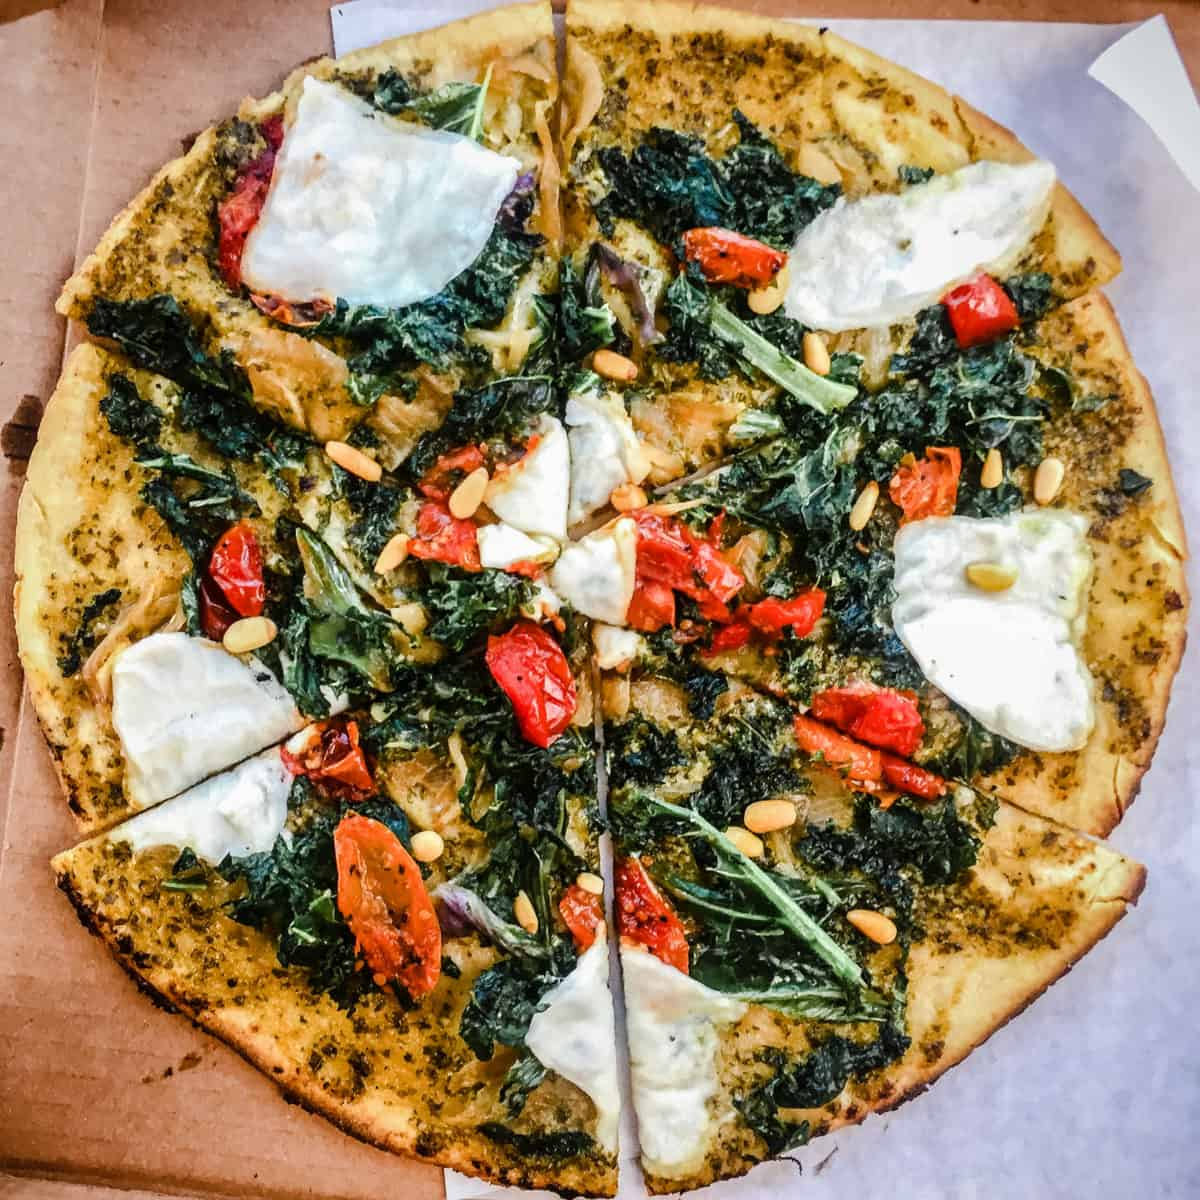 Overhead shot of pizza topped with vegan cheese, tomatoes, kale and pine nuts from Virtuous Pie Restaurant in Vancouver.